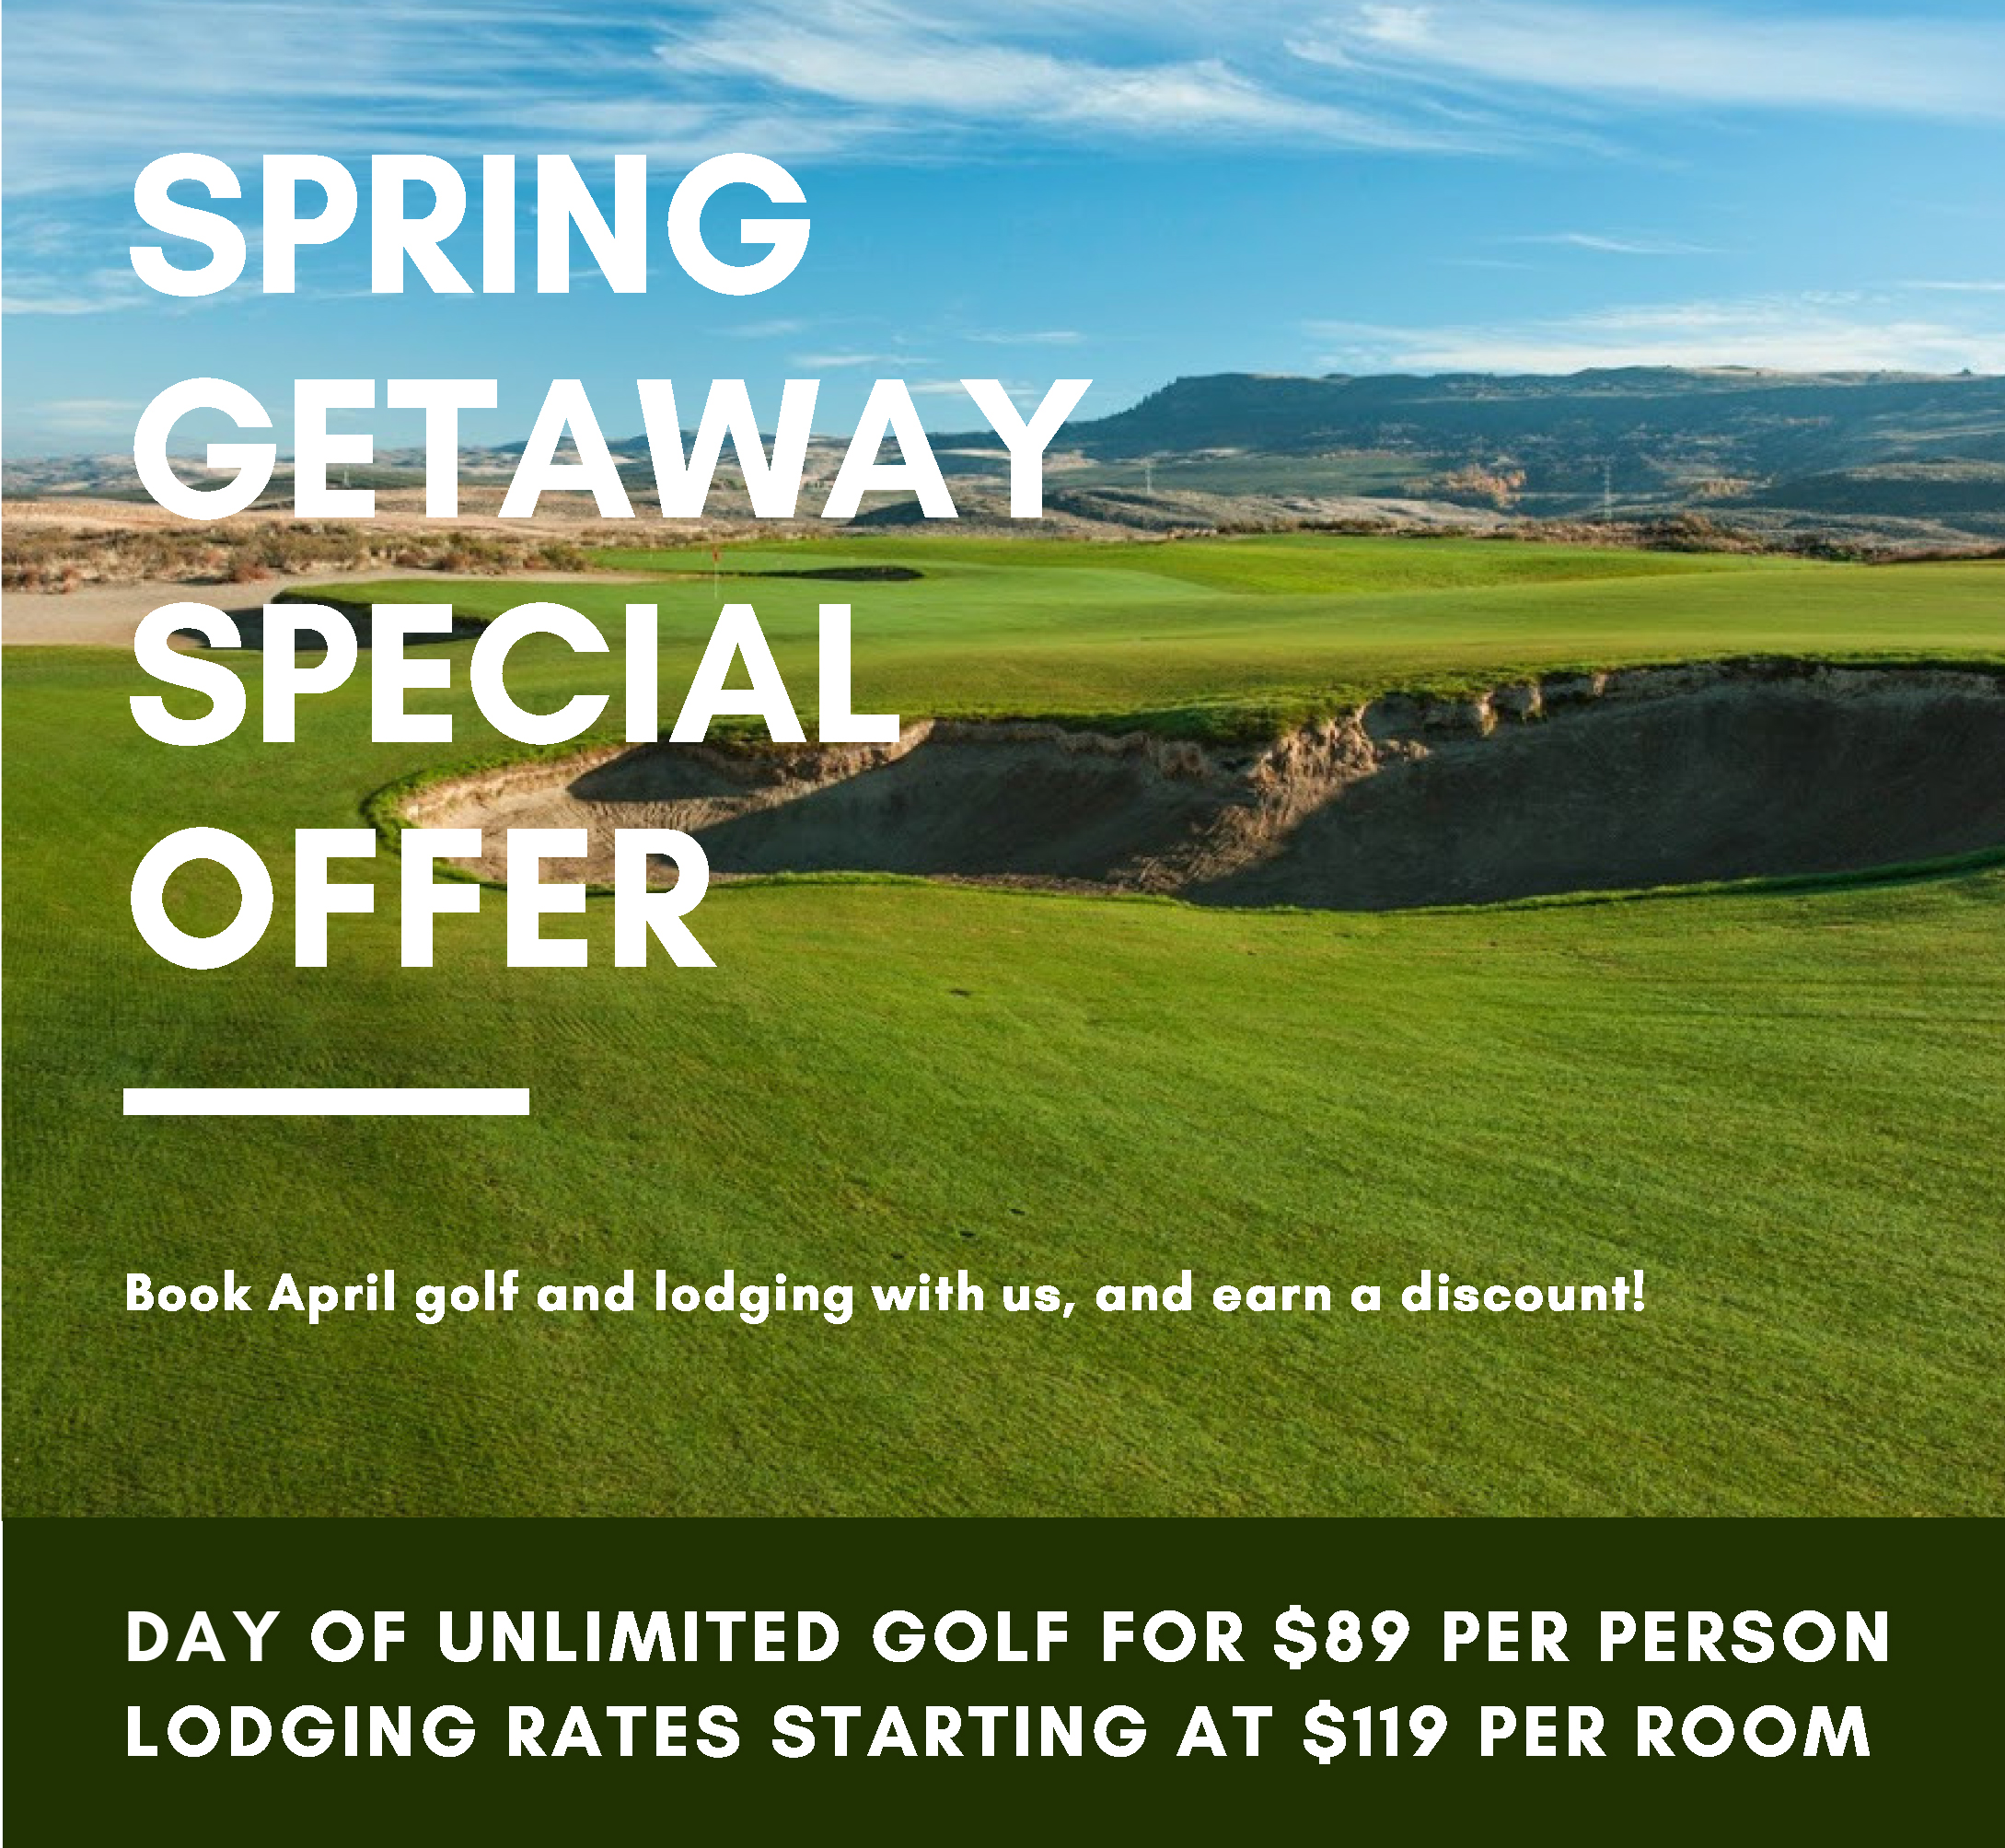 Gamble Sands Offer